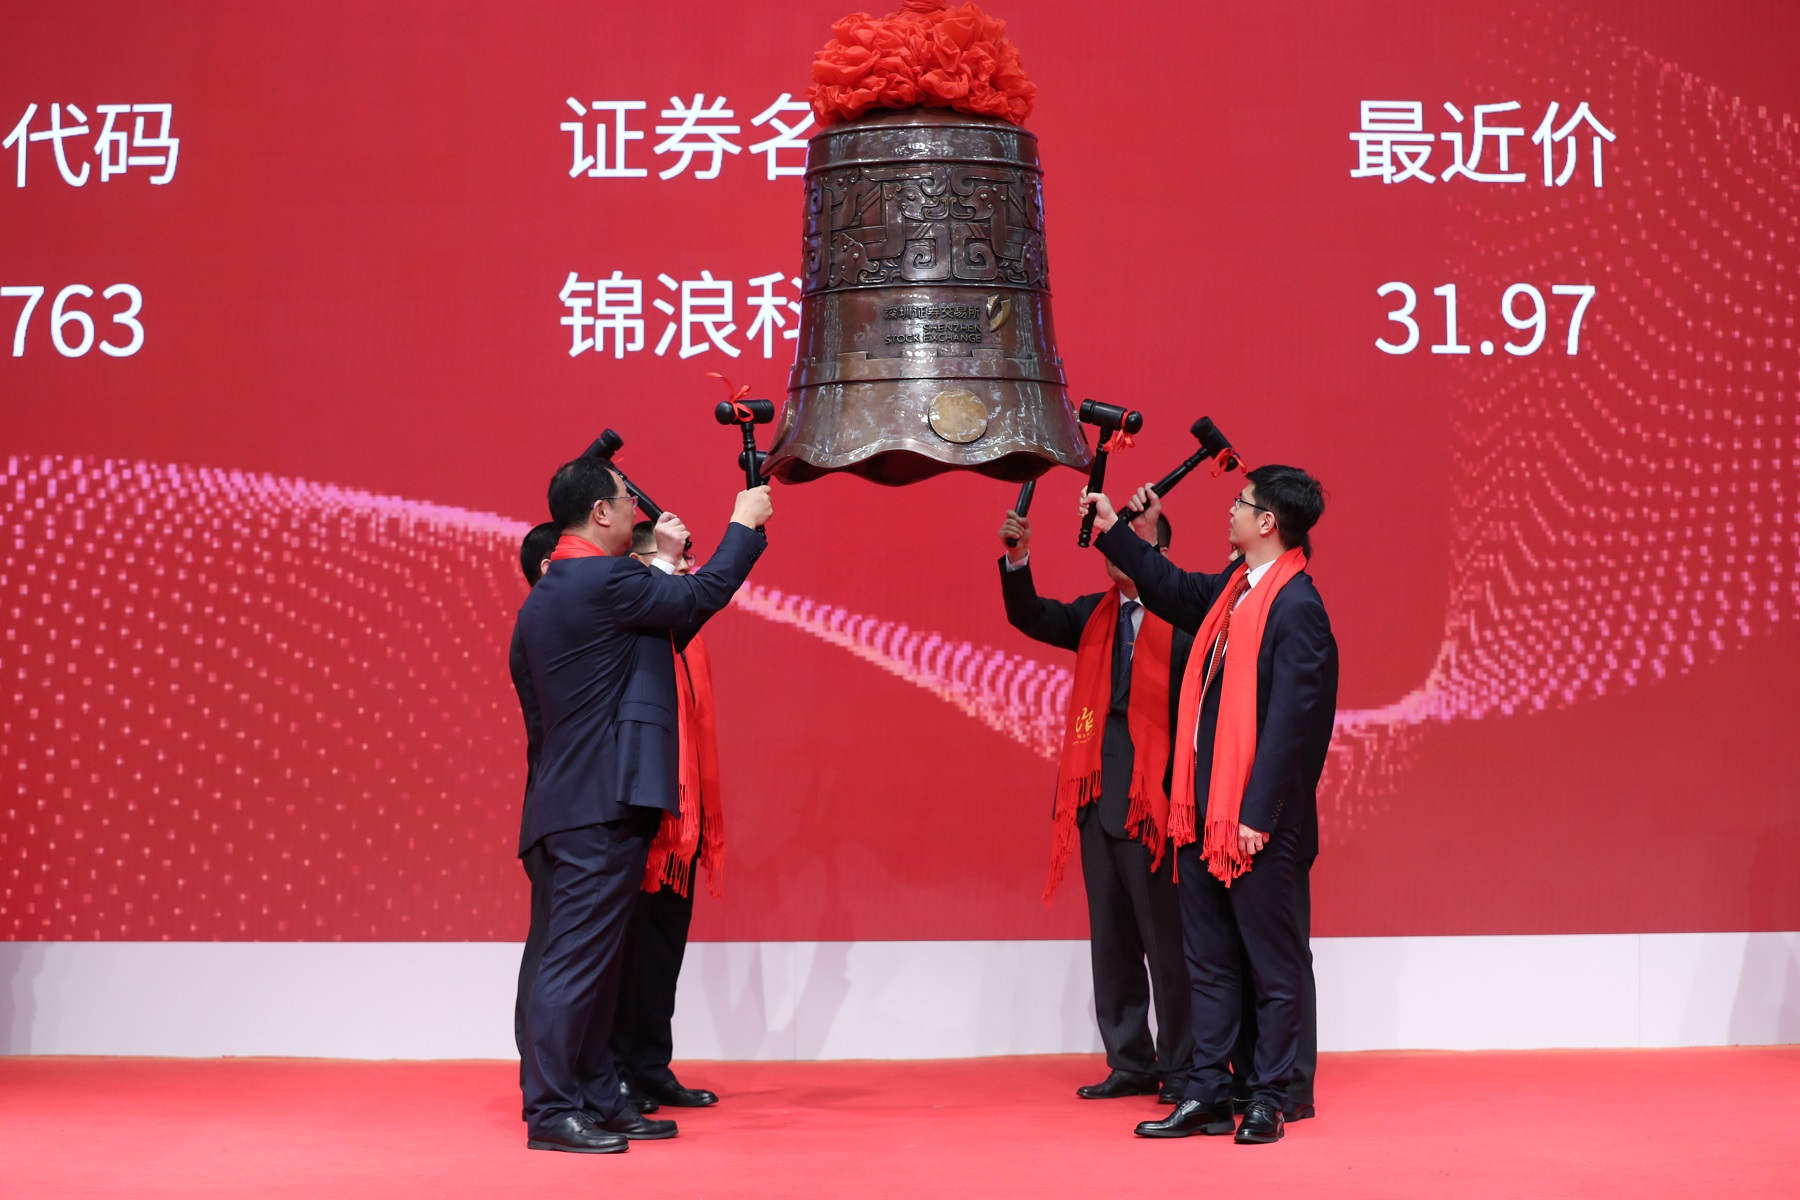 In March, Ginlong executives ring the opening bell at the Shenzhen Stock Exchange. Source: Ginlong.